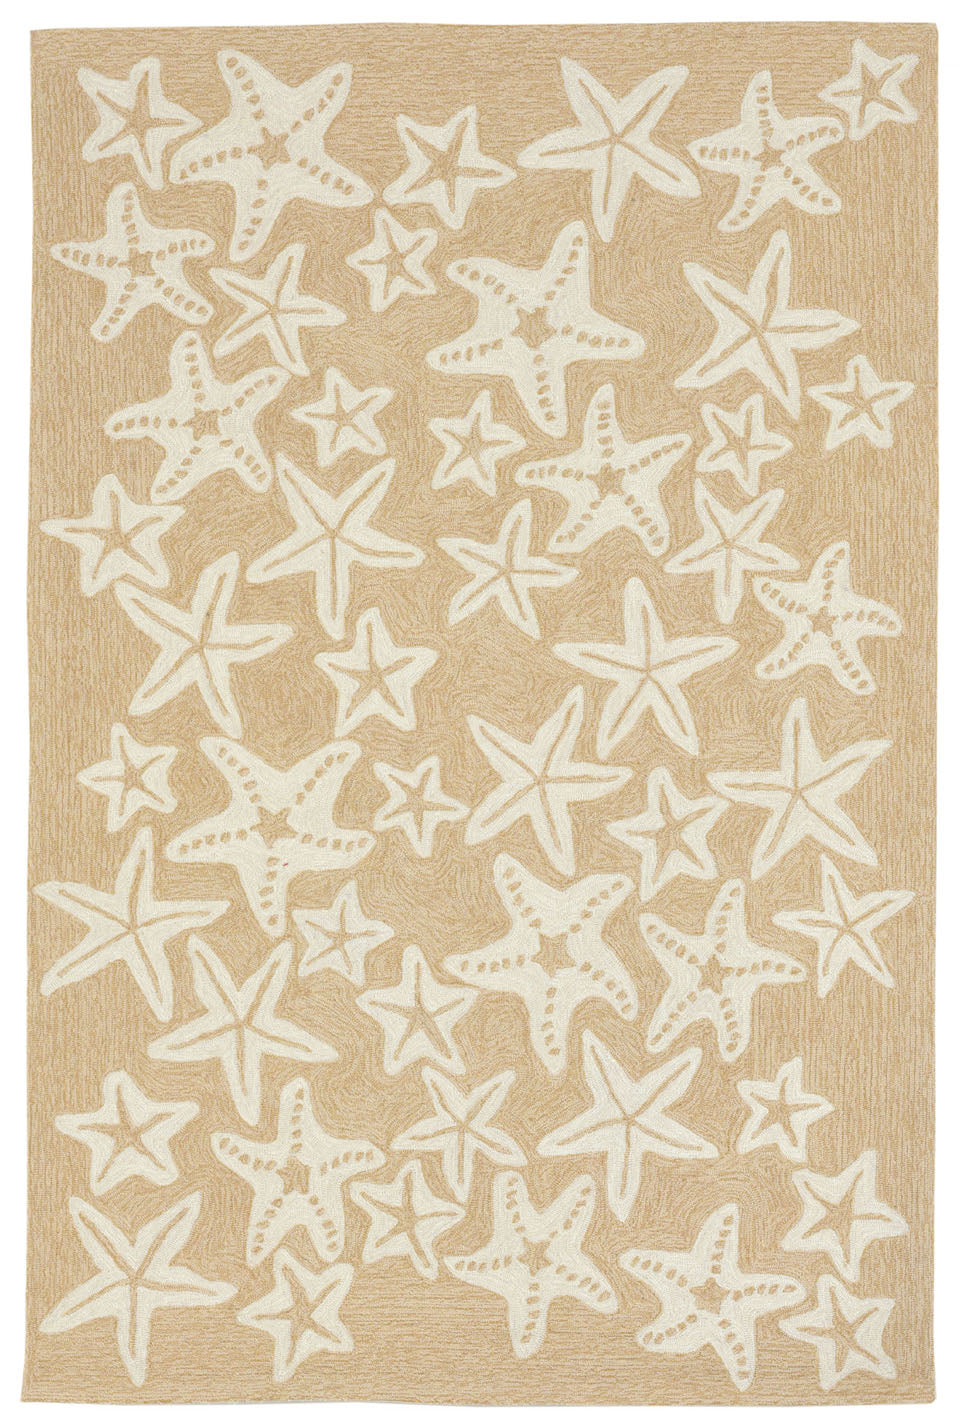 Trans Ocean Capri Starfish Natural Area Rug by Liora Manne main image